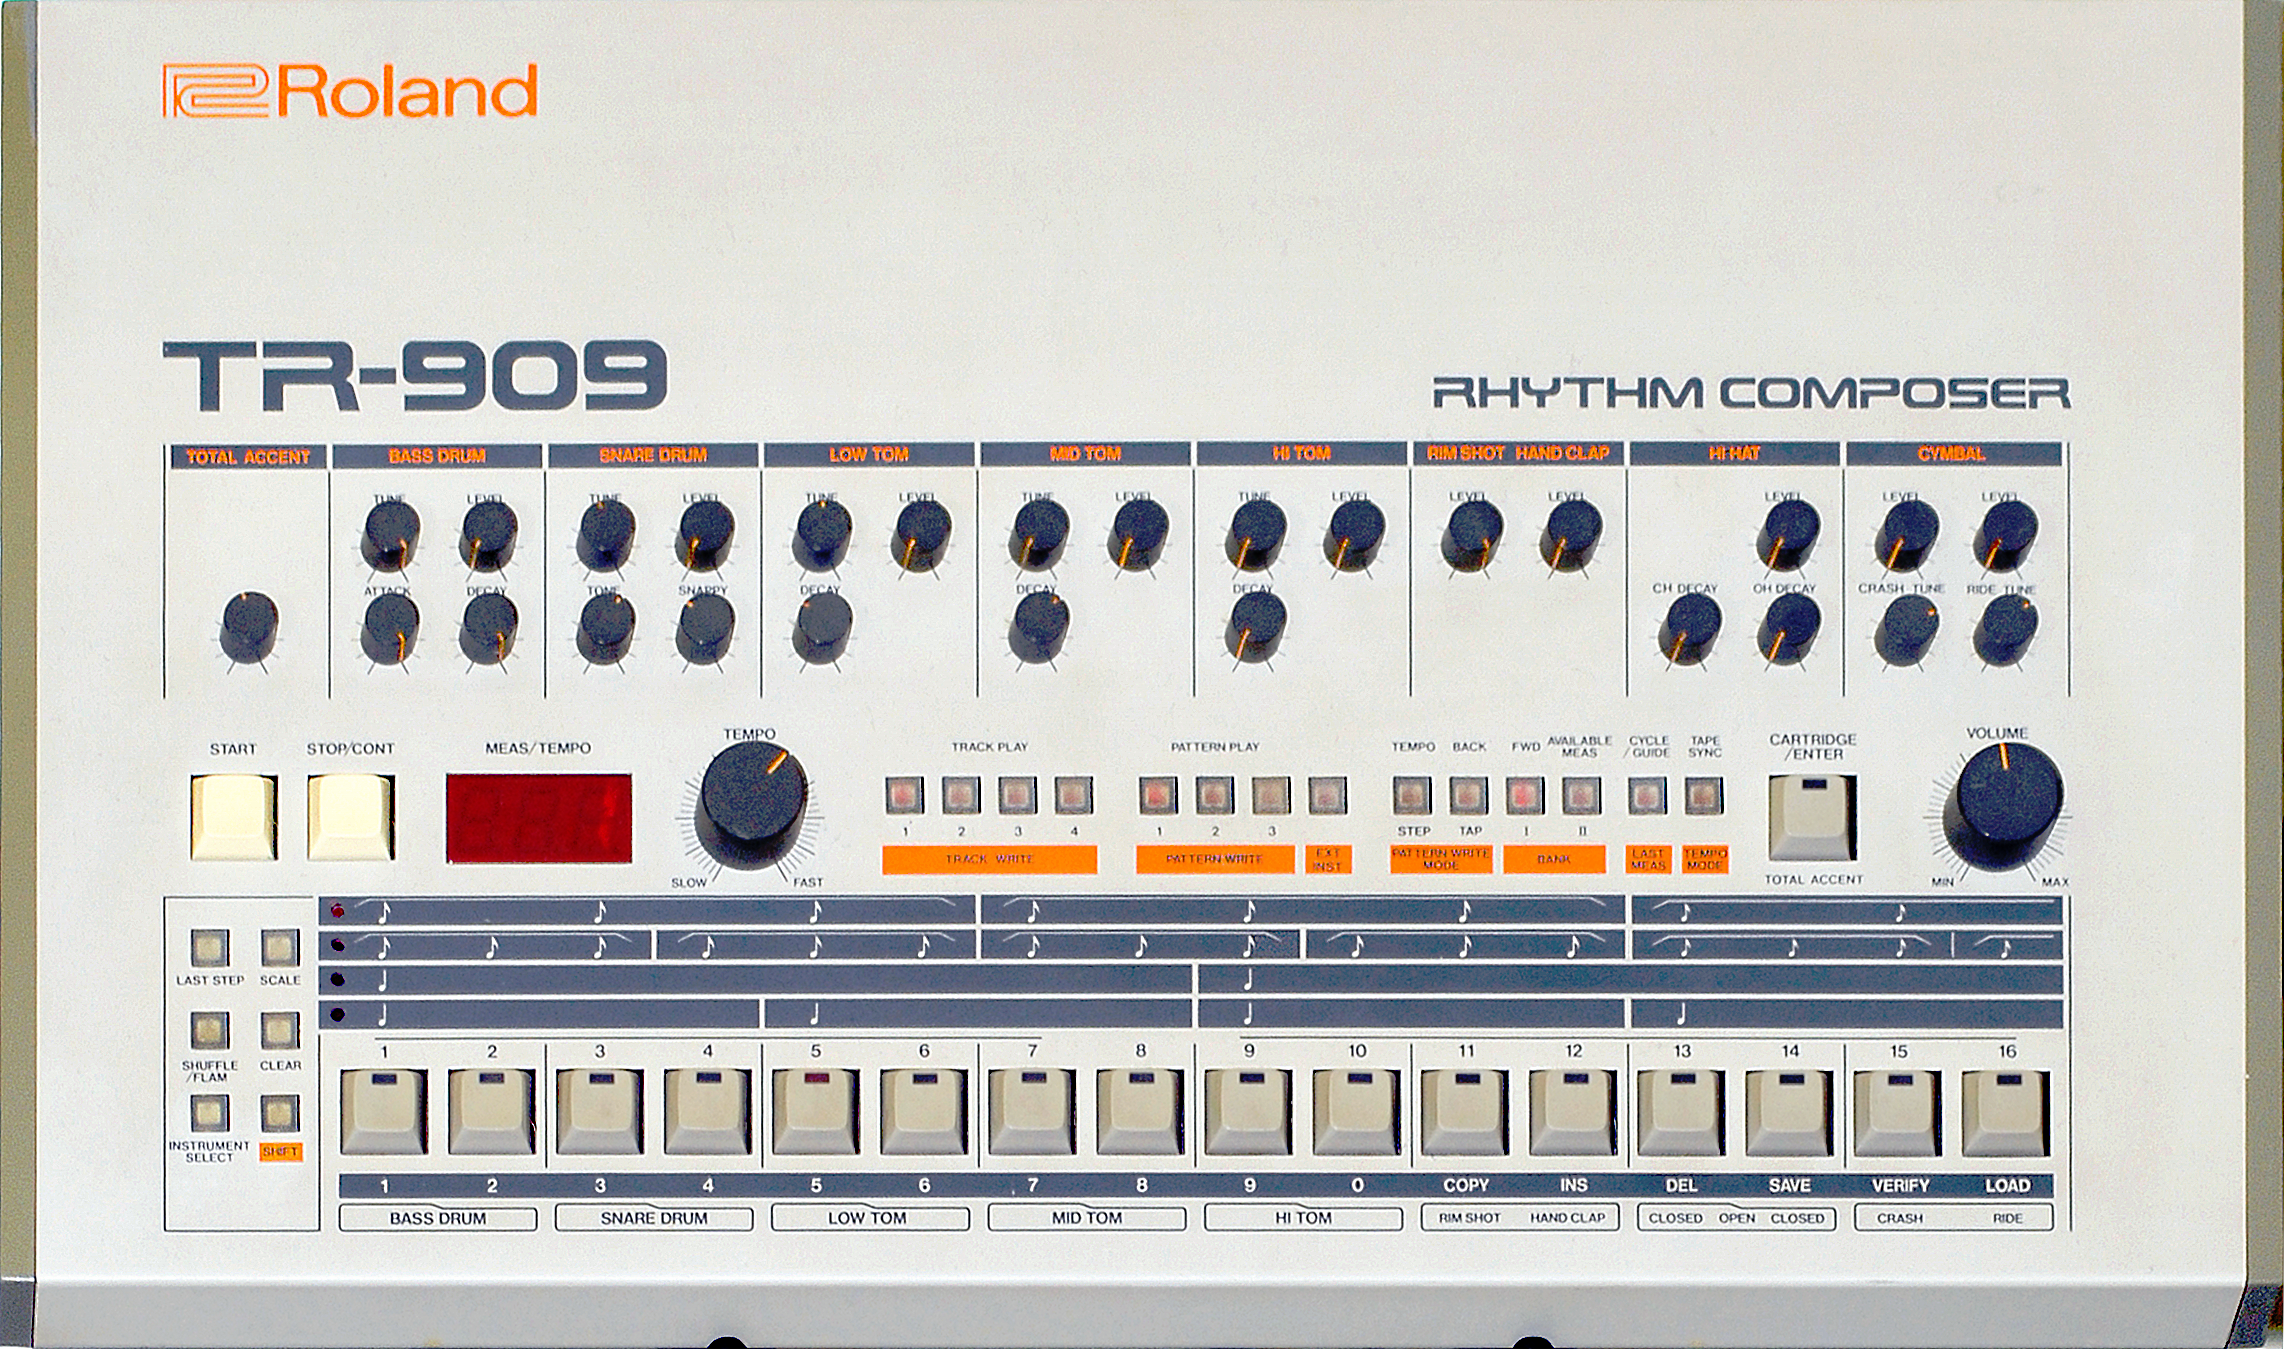 File:Roland TR-909 (large).png